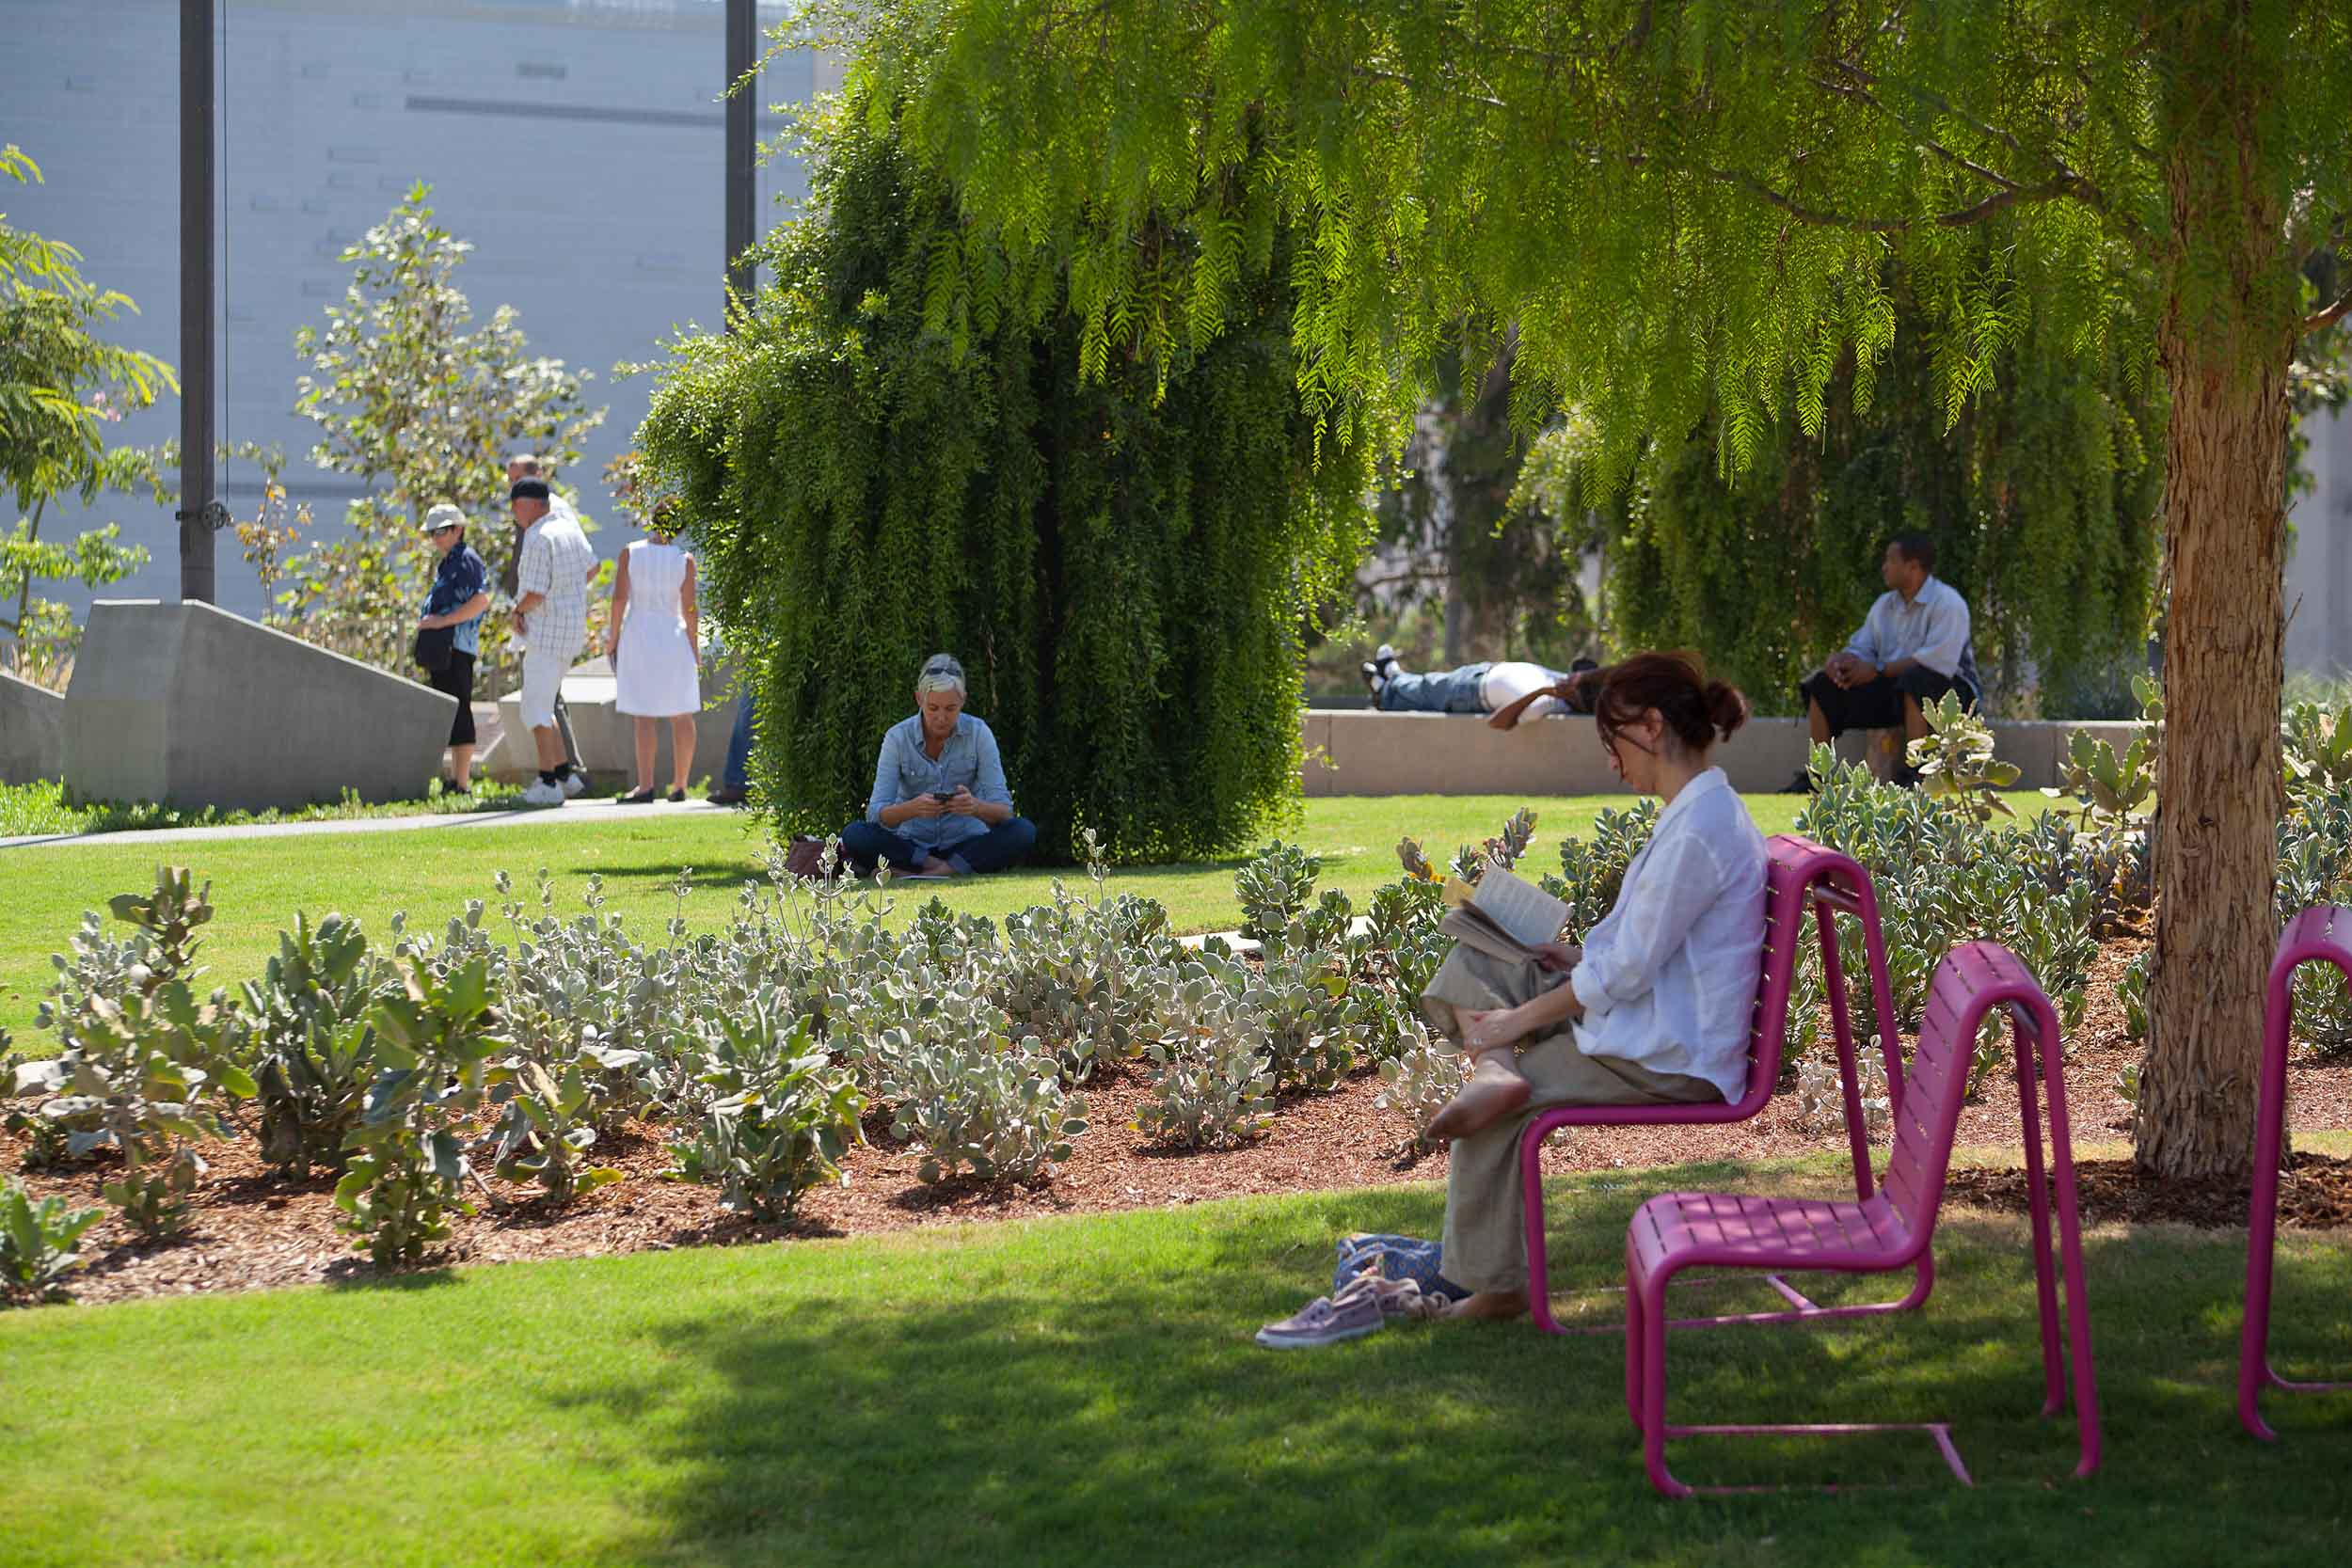 woman seated at a pink chair reading a book under a tree